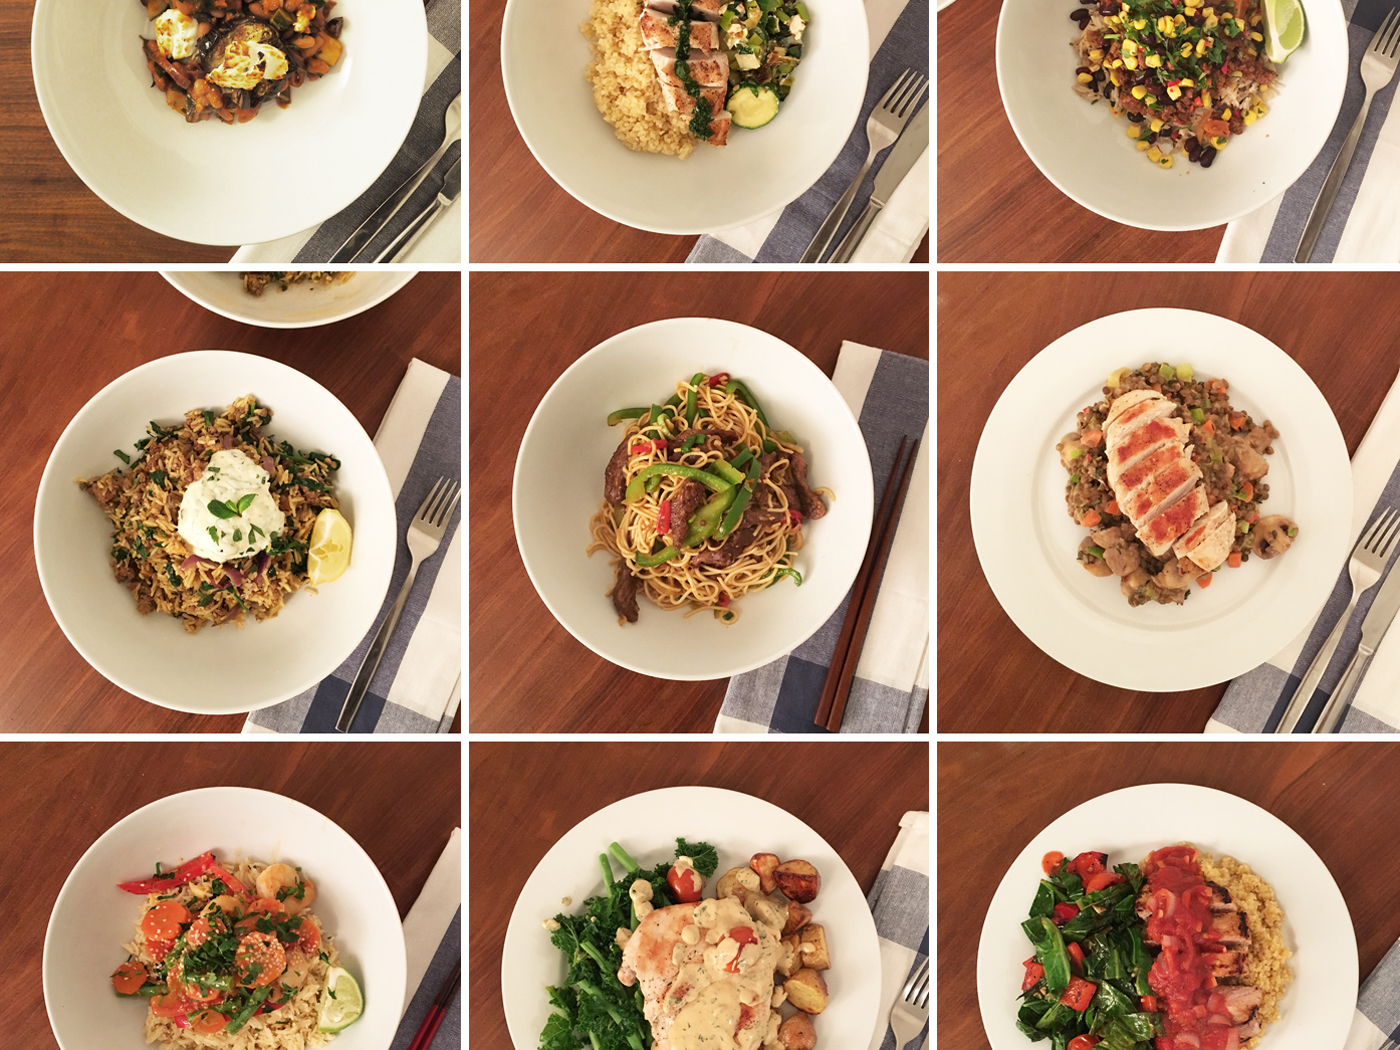 Giveaway Free No Survey Hellofresh Meal Kit Delivery Service